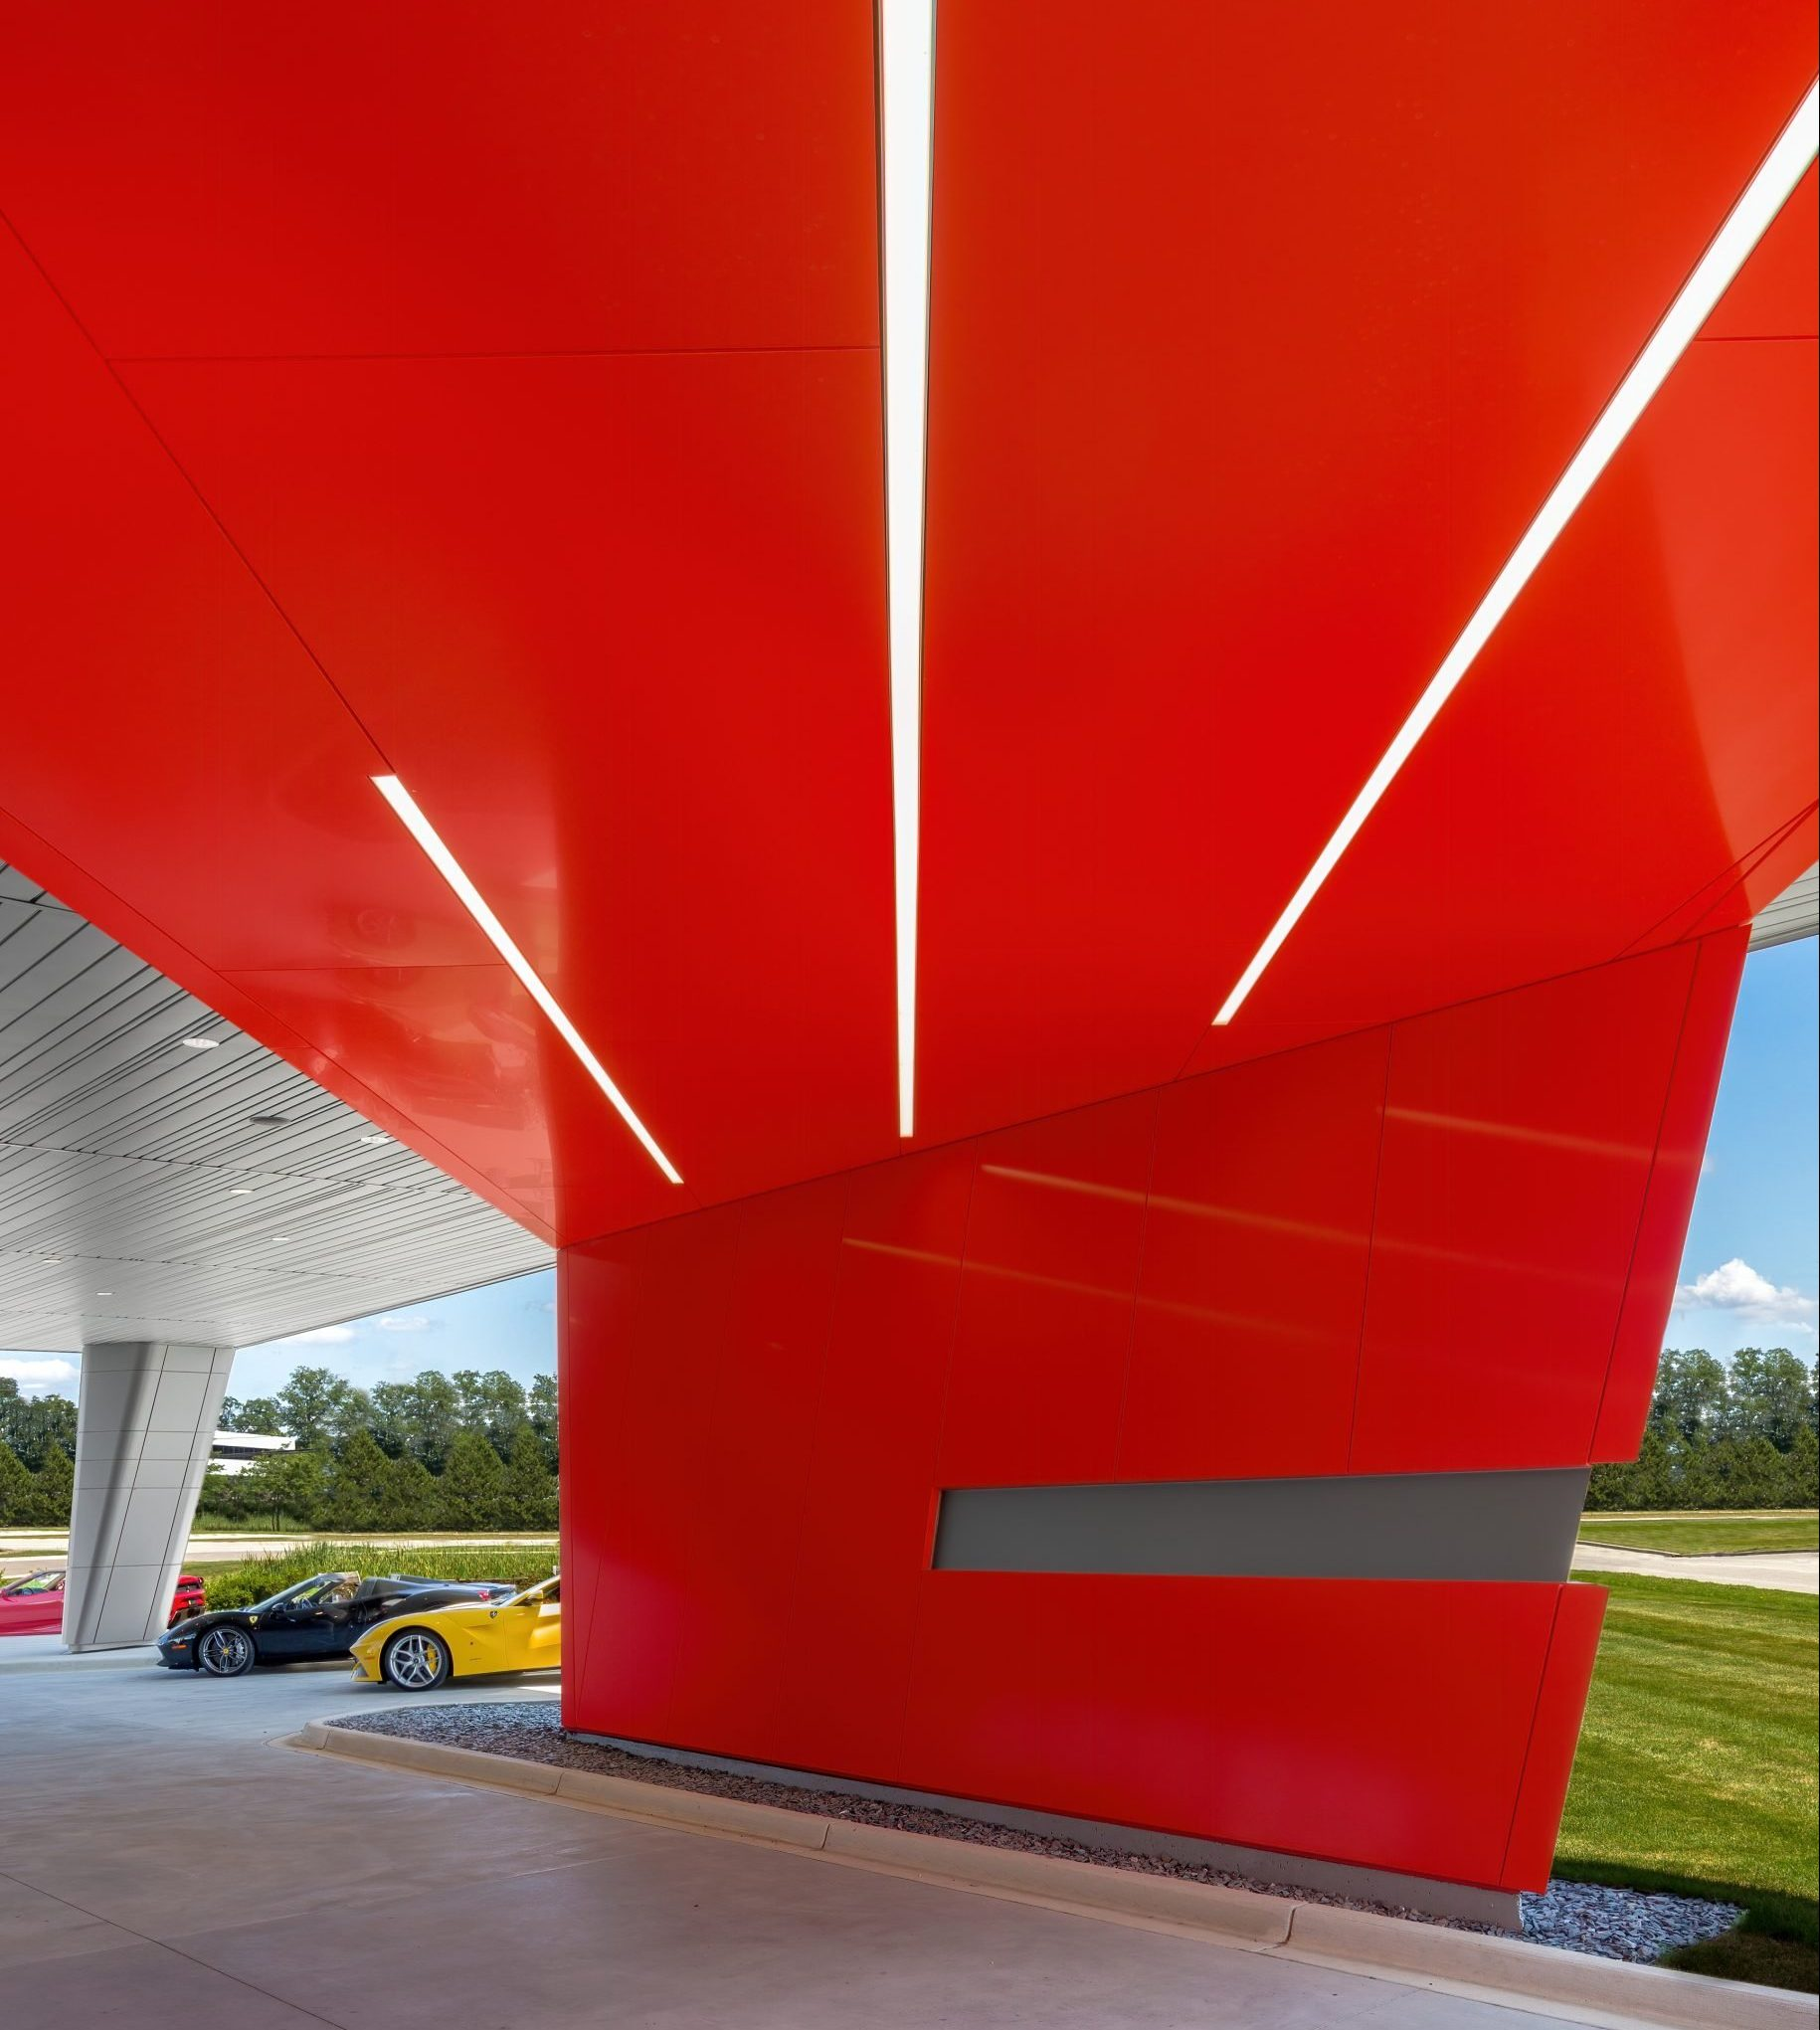 Detail of red underpass and lighting at Cauley Ferrari of Detroit Dealership and Showroom Project in Michigan Architecture Interiors Computational Design